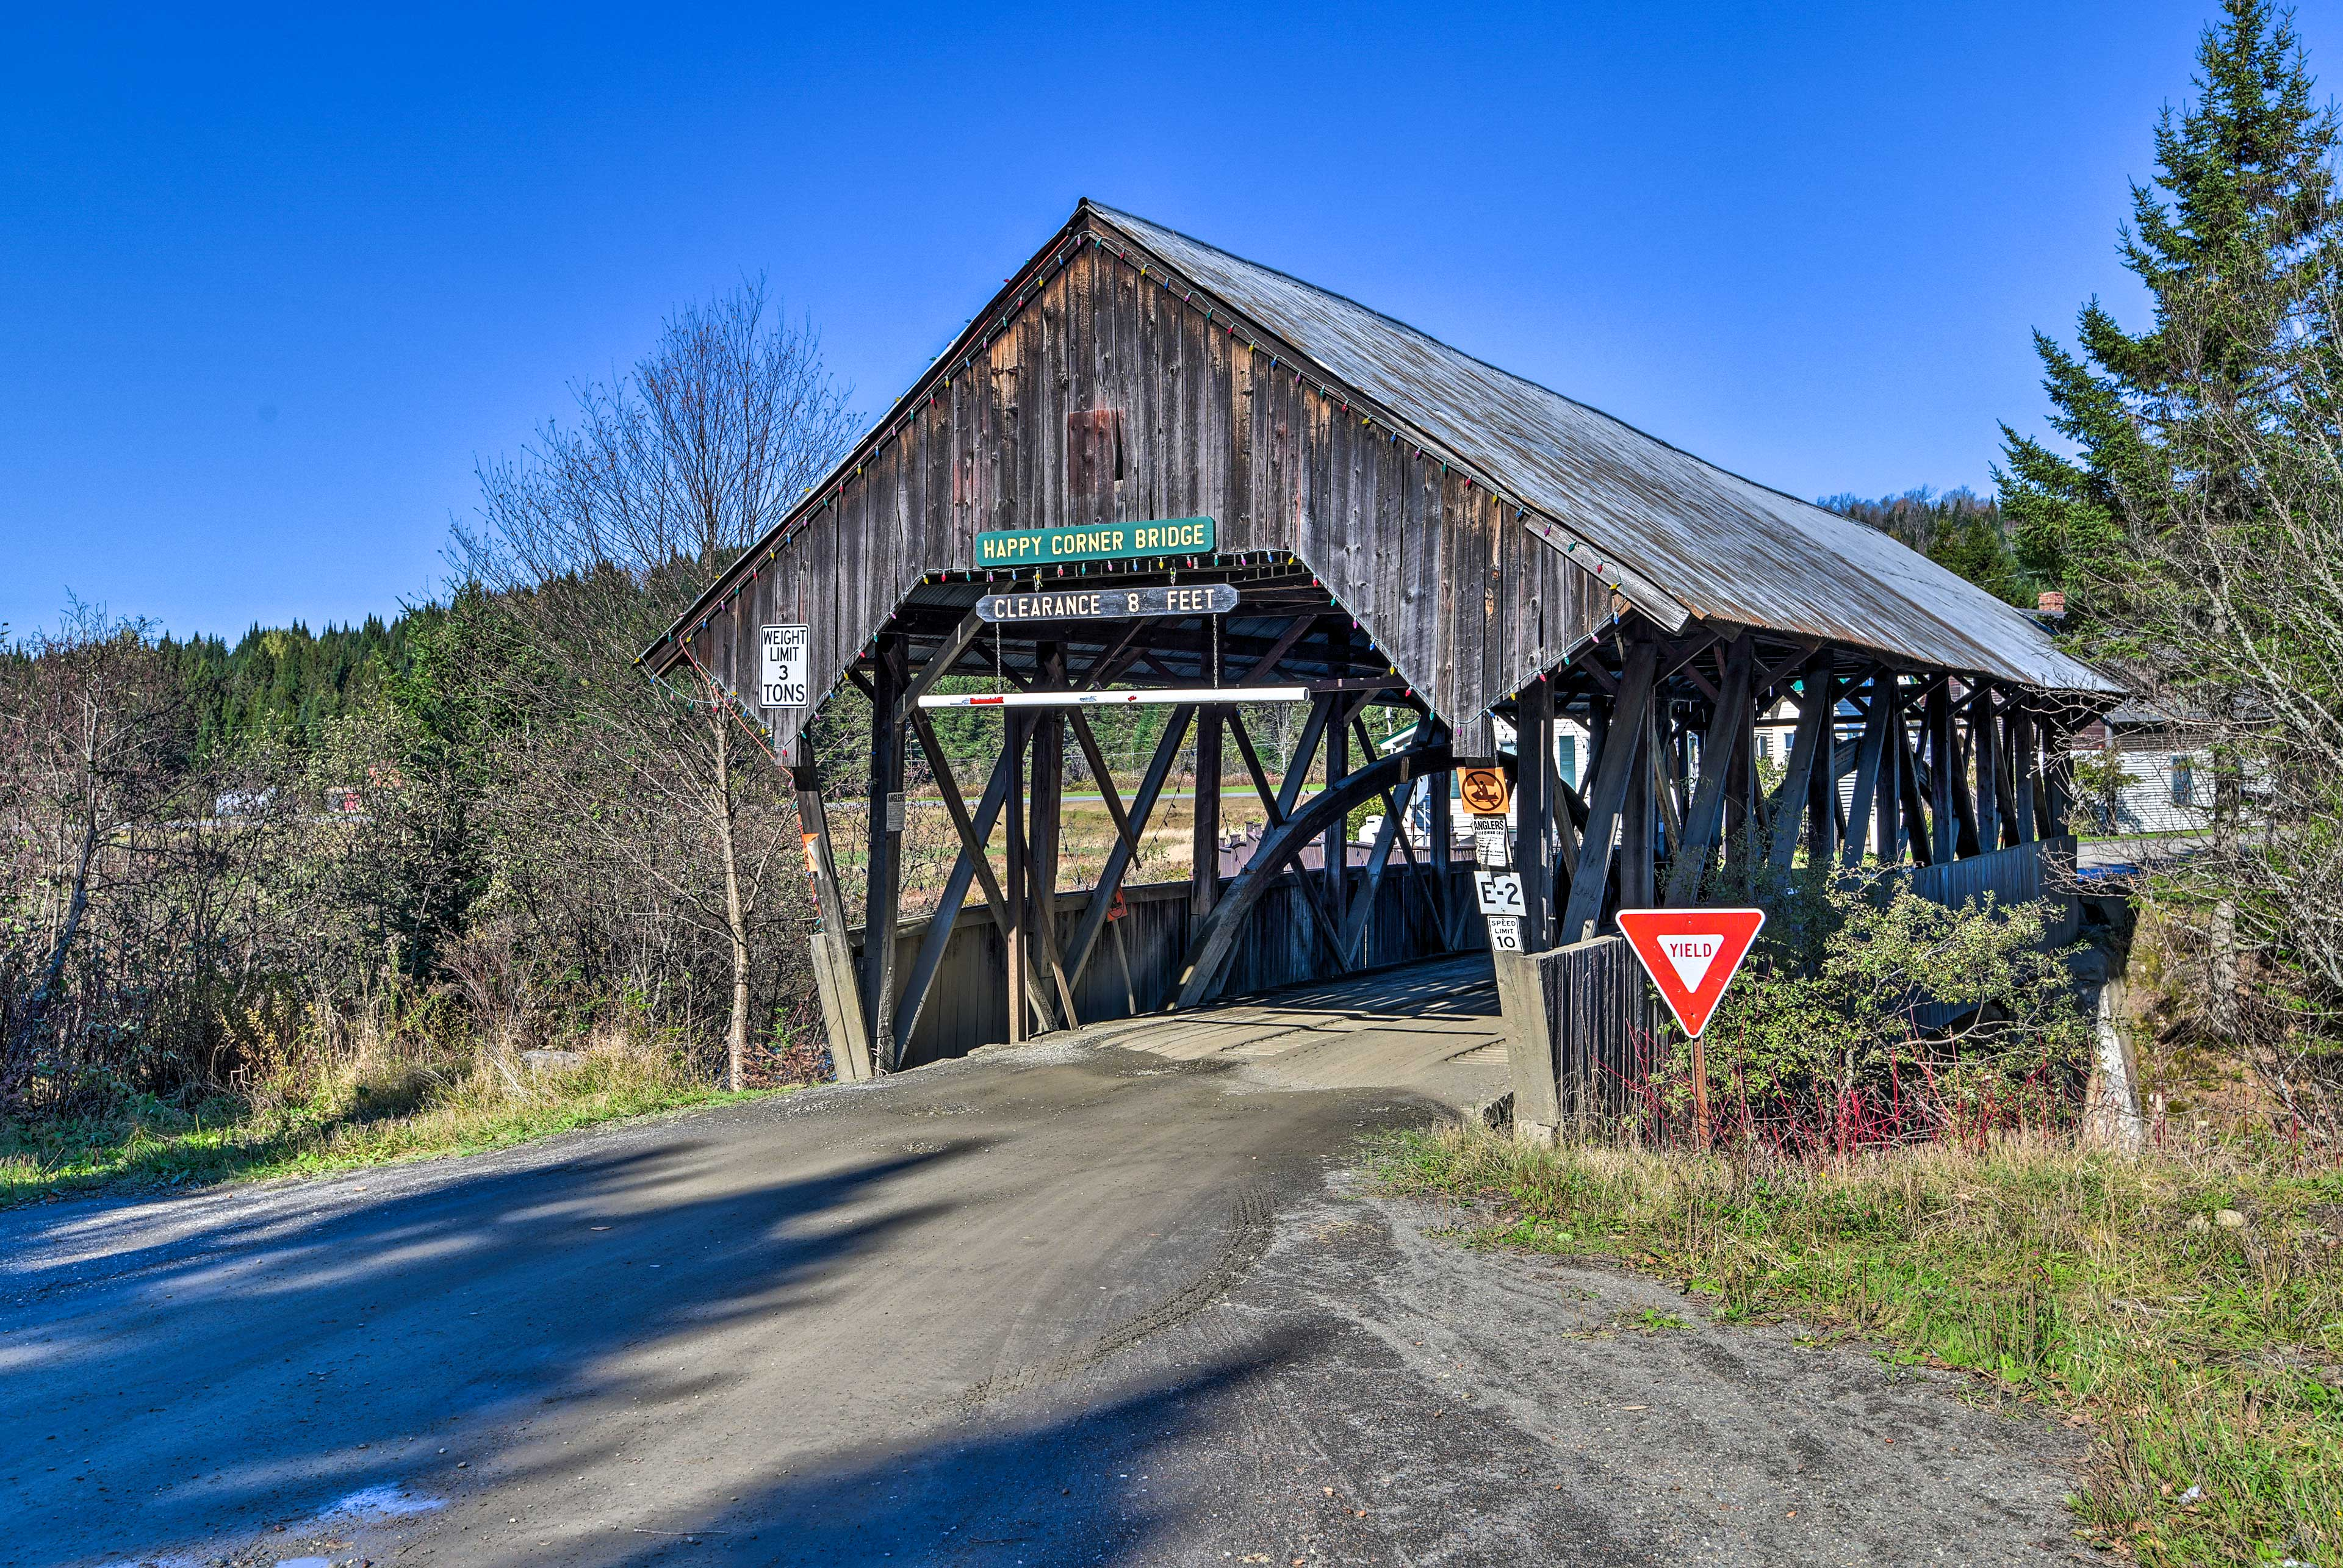 This covered wooden bridge sits just steps from the property.